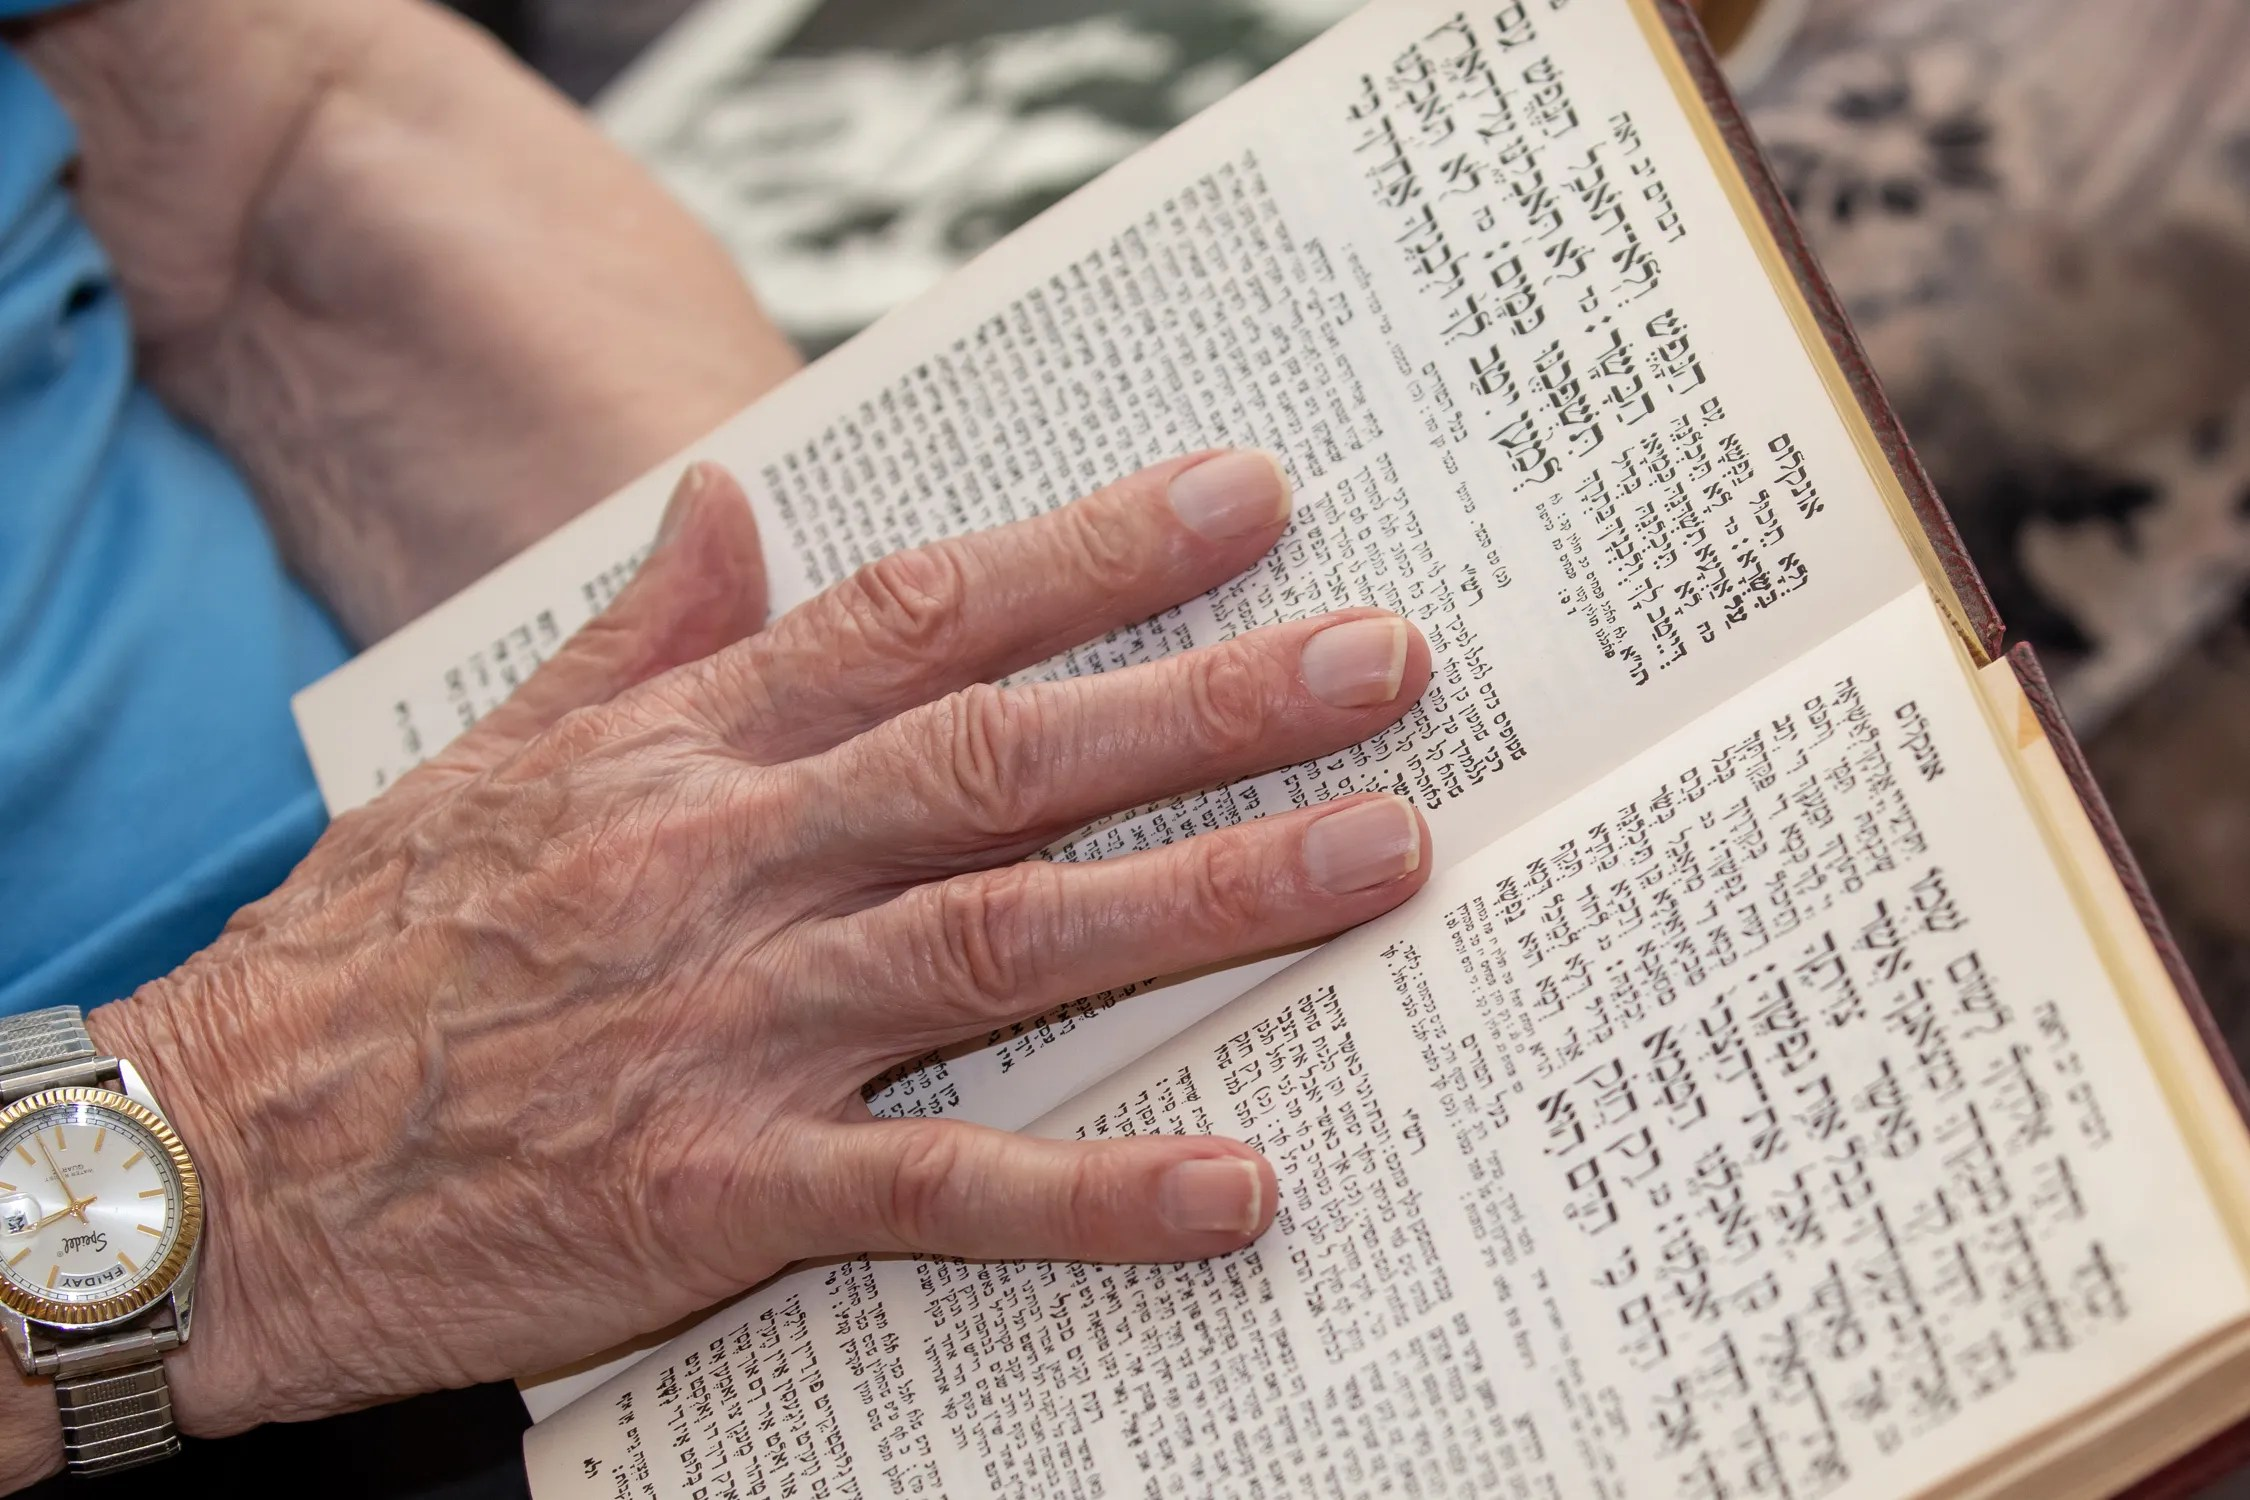 Ernie Gross, a holocaust survivor living in Philadelphia, leafs through the pages of a Siddur prayer book, as he shares his story Friday, July 31, 2020.